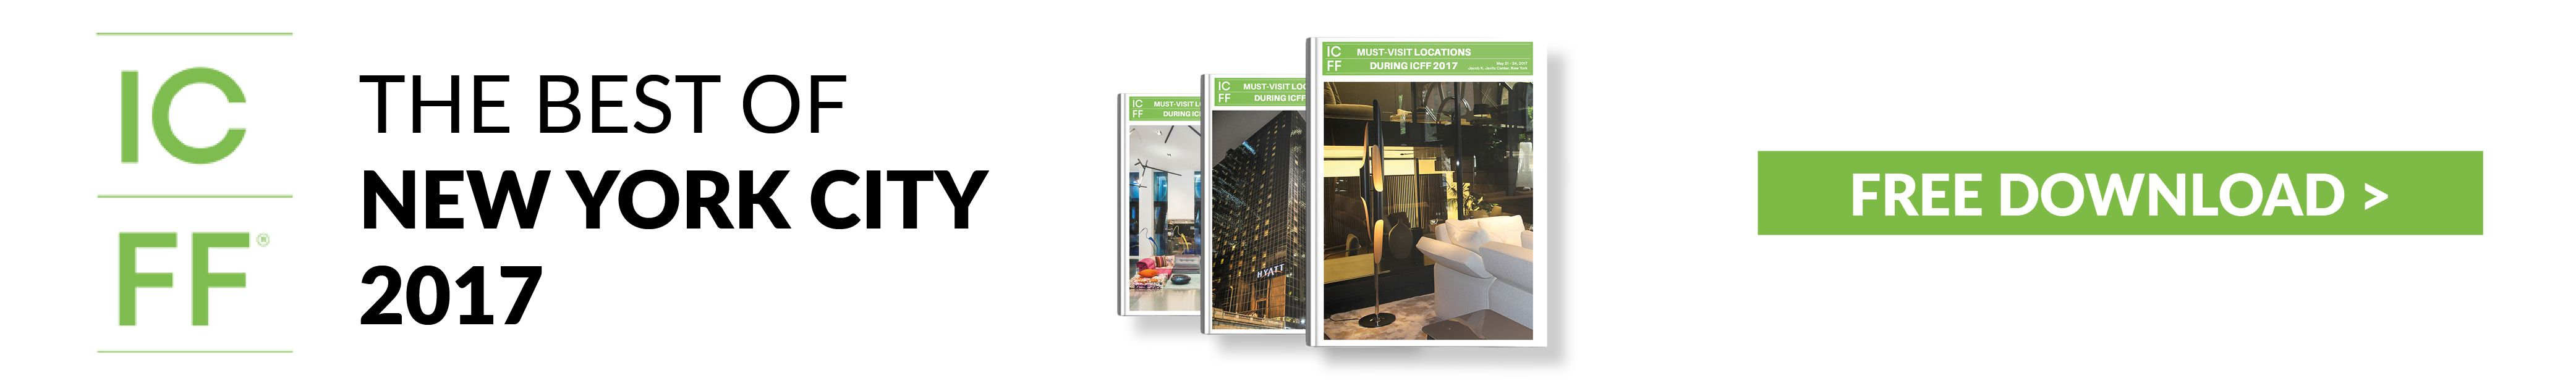 icff 2017 ICFF 2017: Celebrate Design in NYC ICFF1 banner home ICFF BRABBU'S Ultimate guide for ICFF & New York Design Week ICFF1 banner home nycxdesign awards The Winners of 2017 NYCxDesign Awards ICFF1 banner home